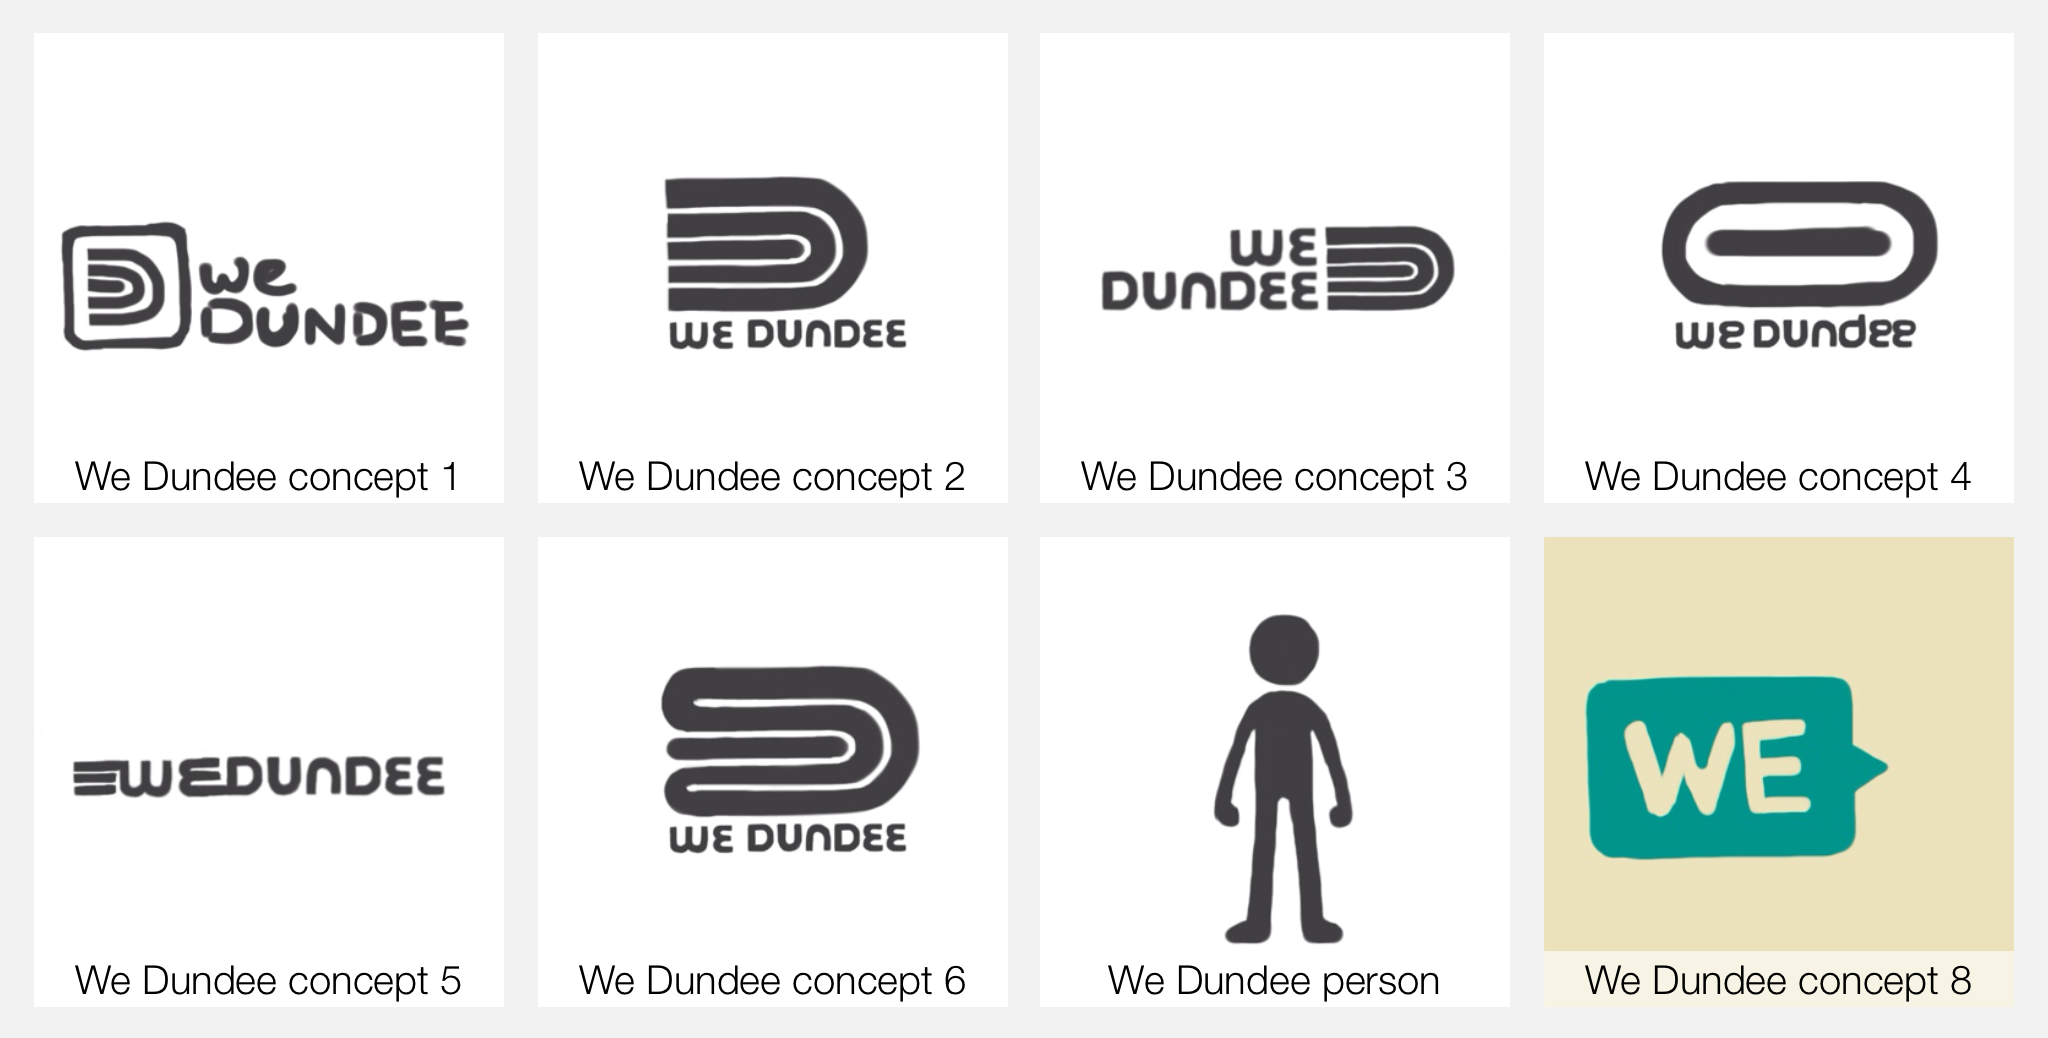 We Dundee Concepts